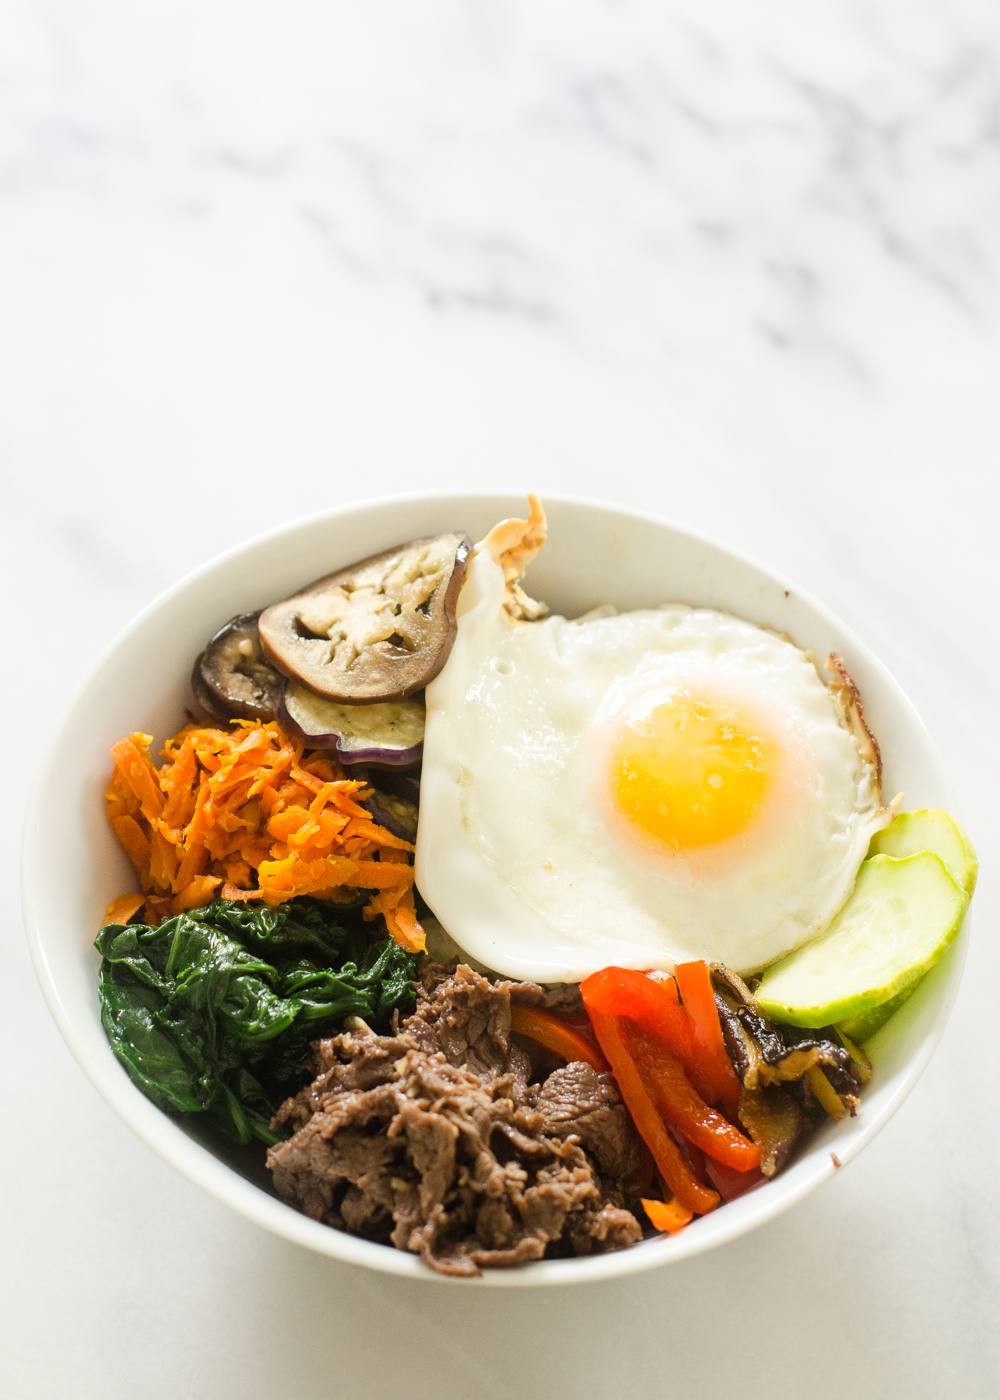 Butcher Box Review Meal 5 - Bibimbap 2